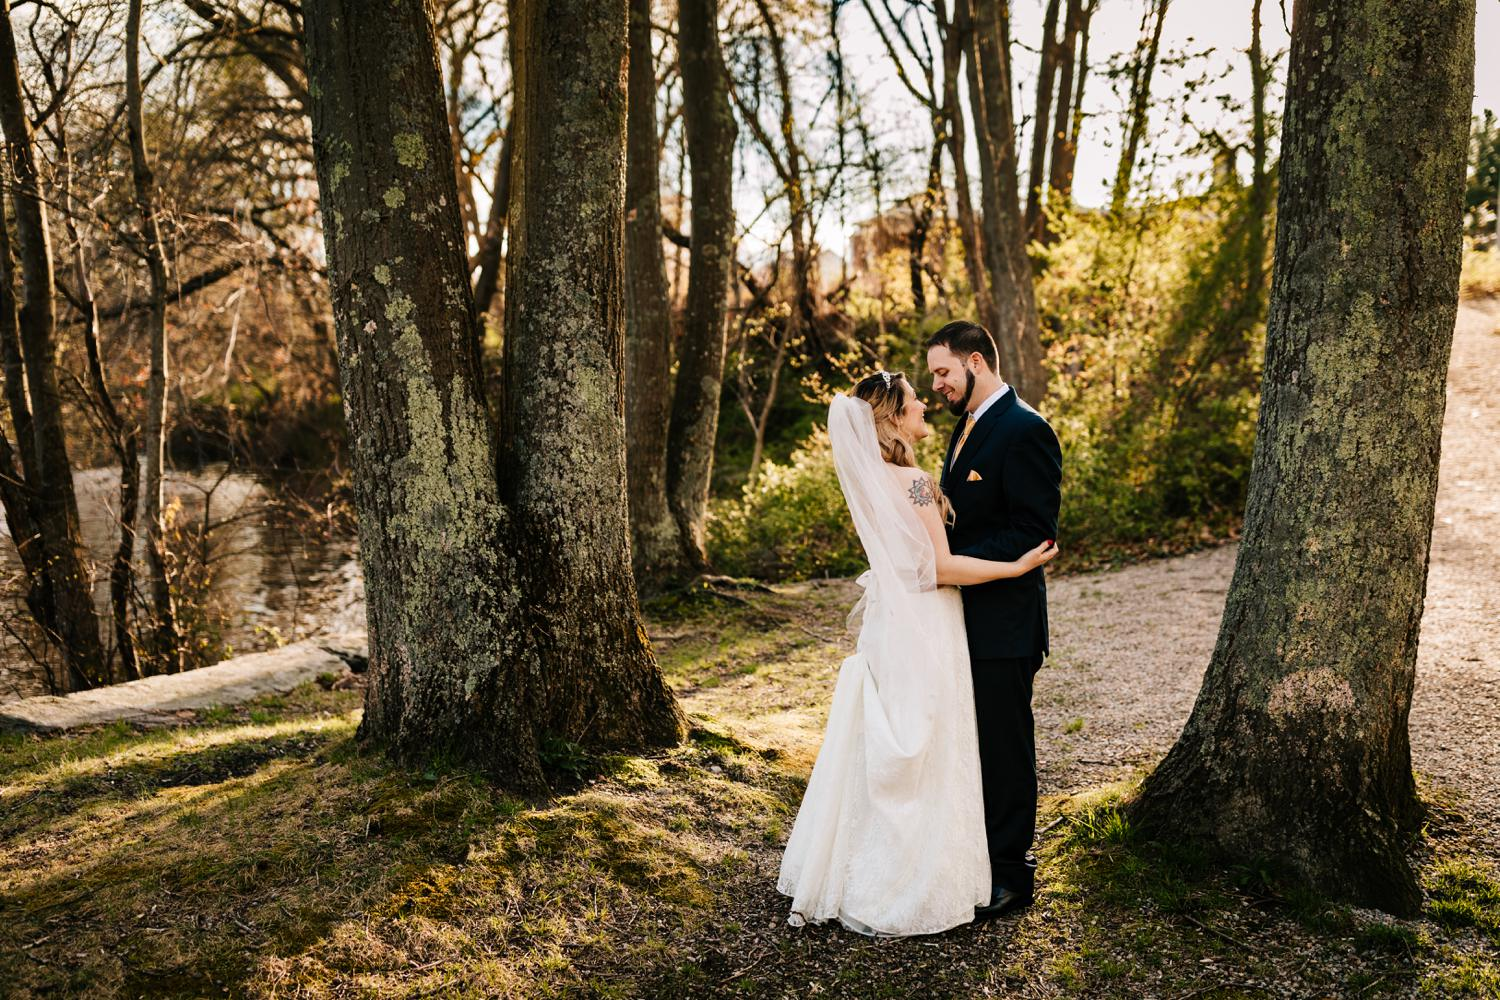 Bride and groom embracing in trees at park with tattoos